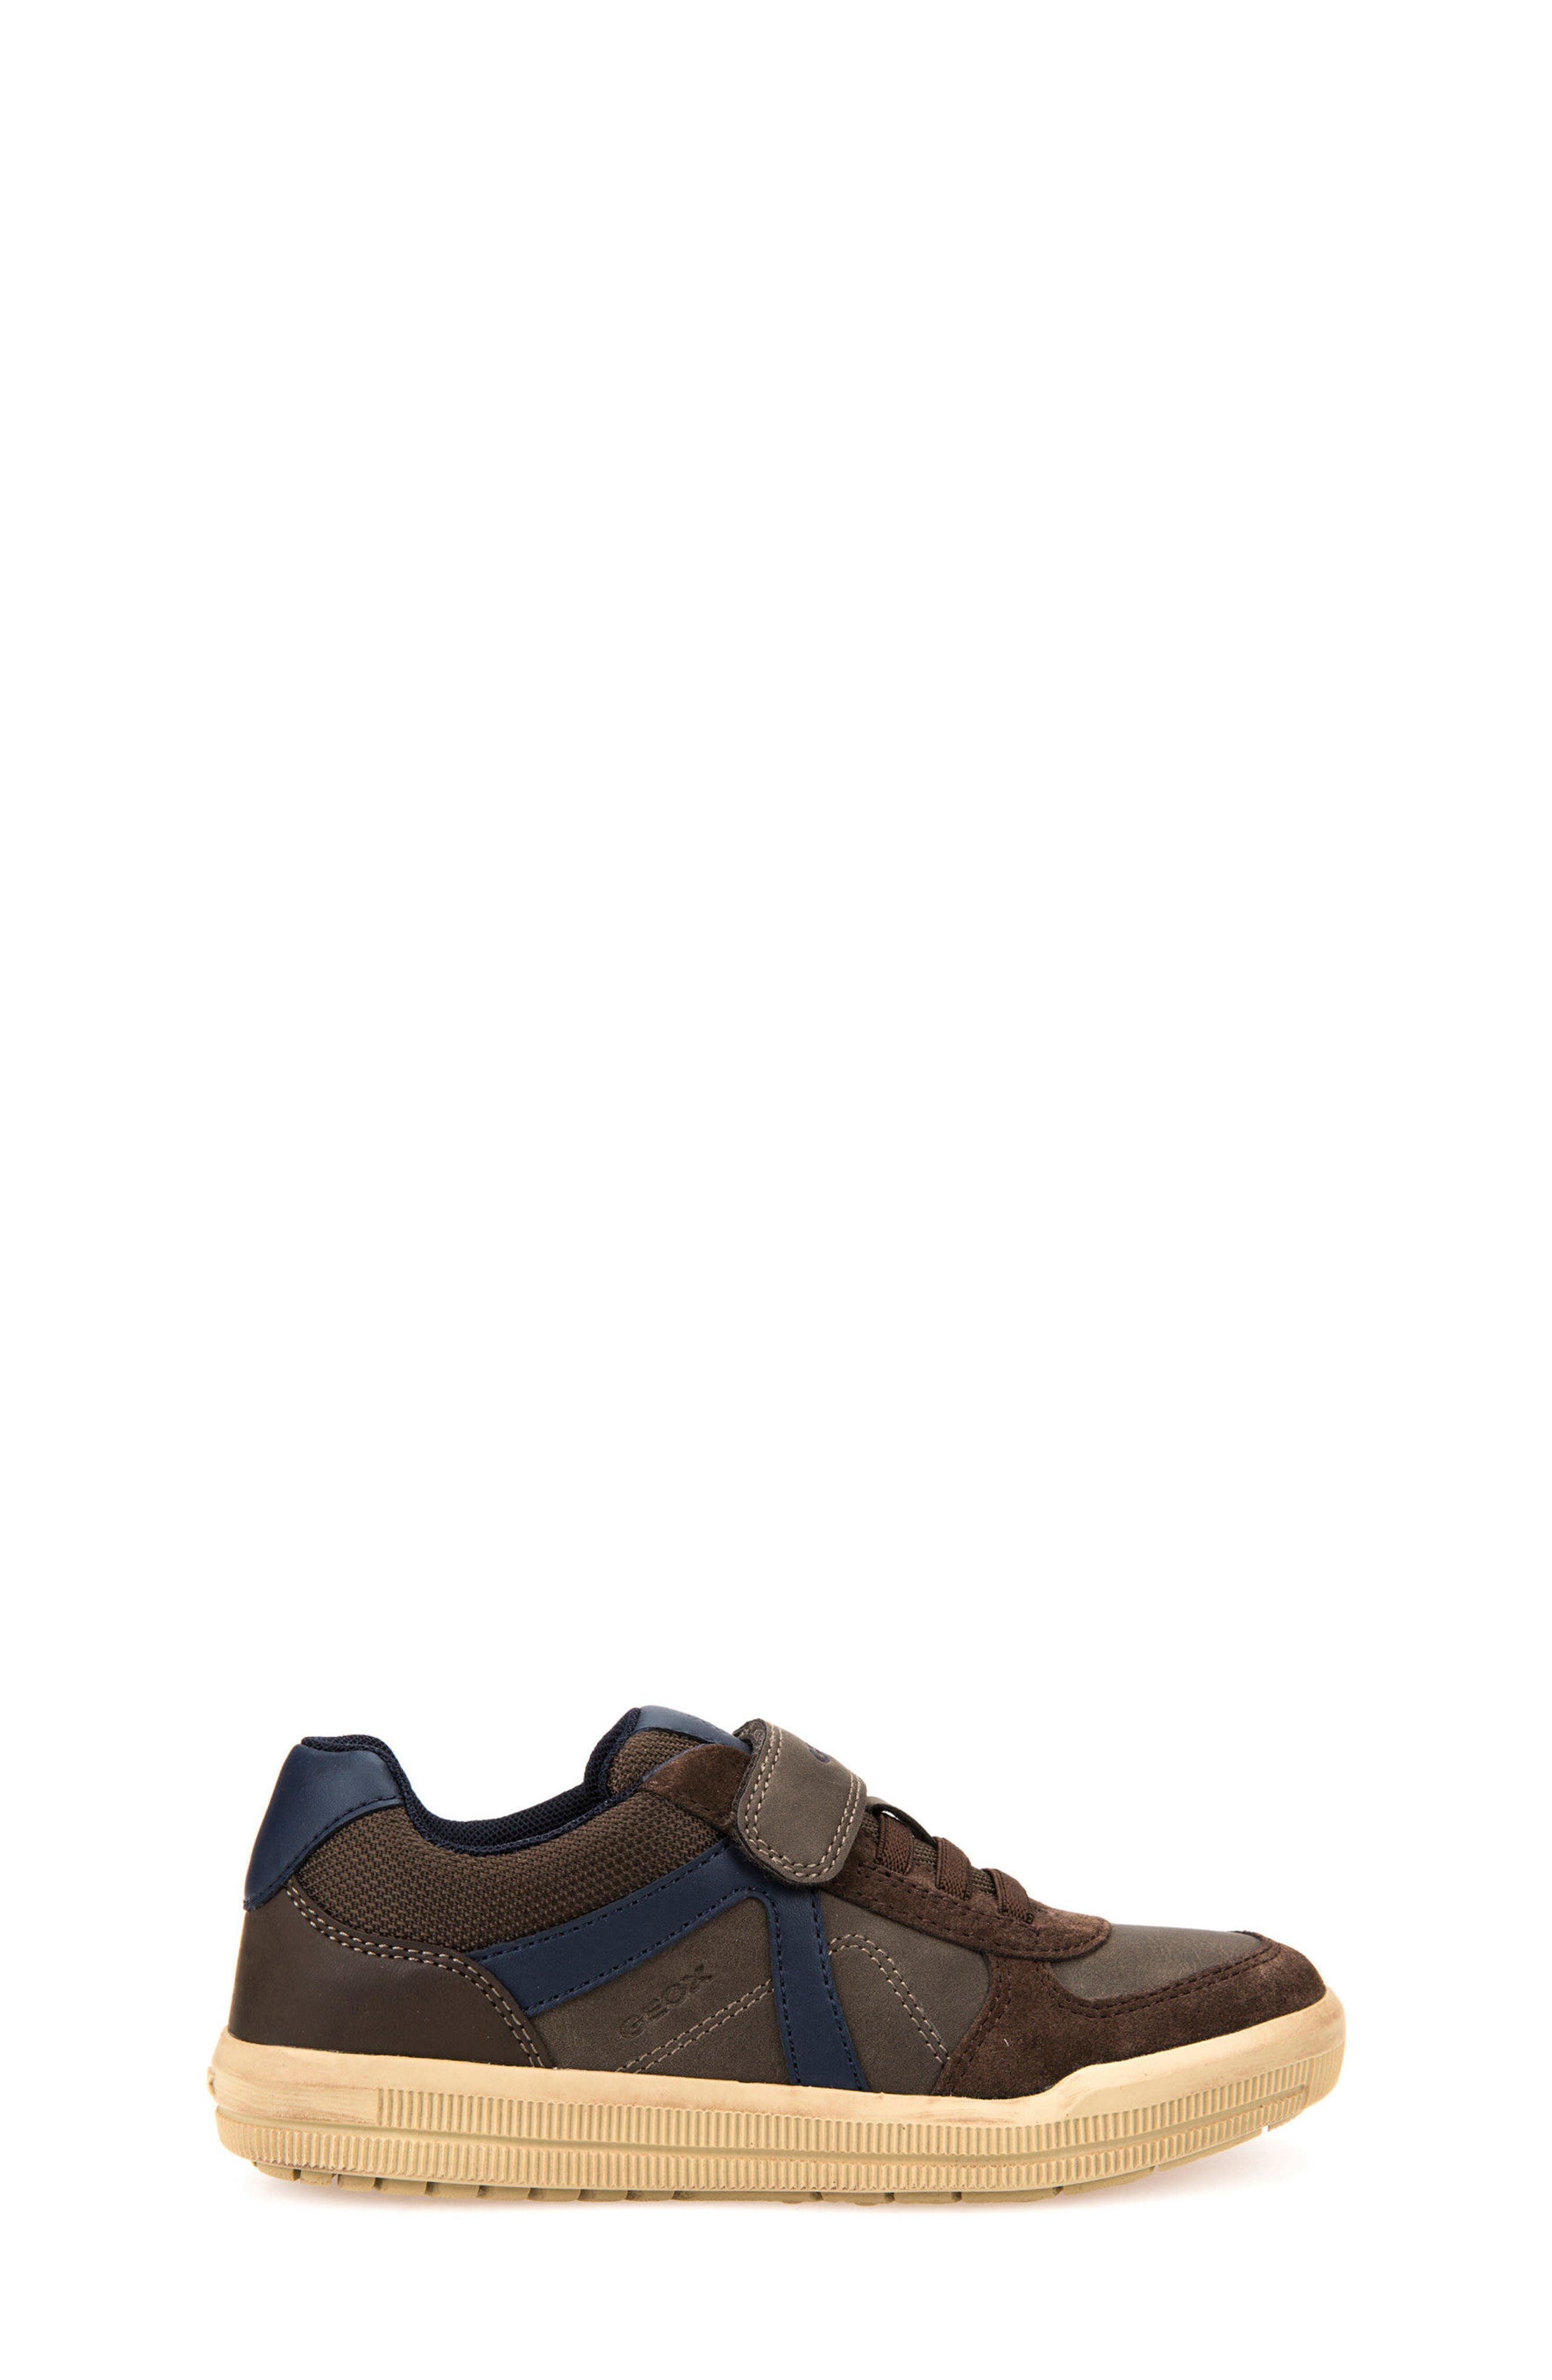 Arzach Low Top Sneaker,                             Alternate thumbnail 3, color,                             Brown/ Navy